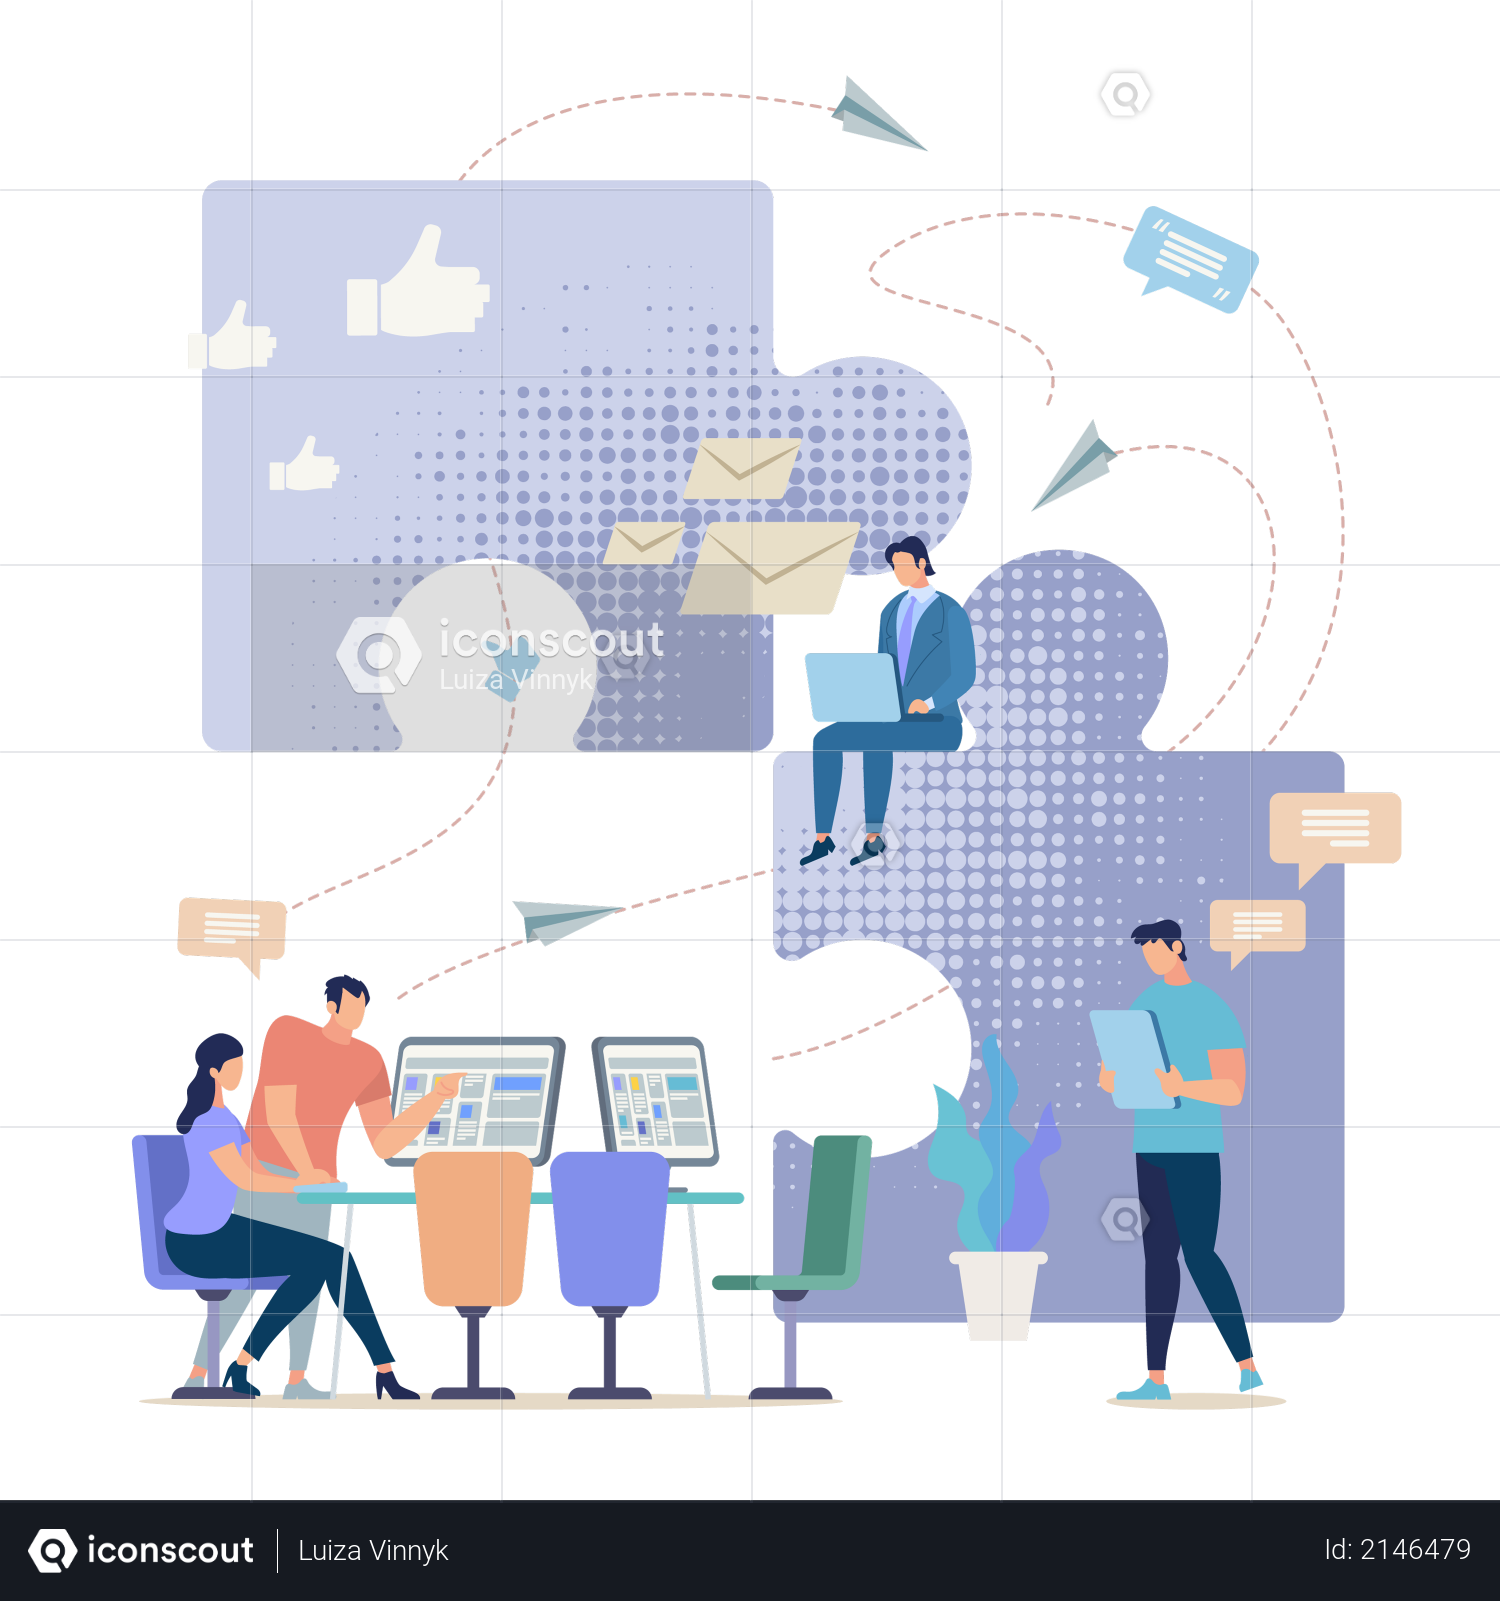 Entrepreneurs Team, Company Employees Group Working Together in Office Illustration